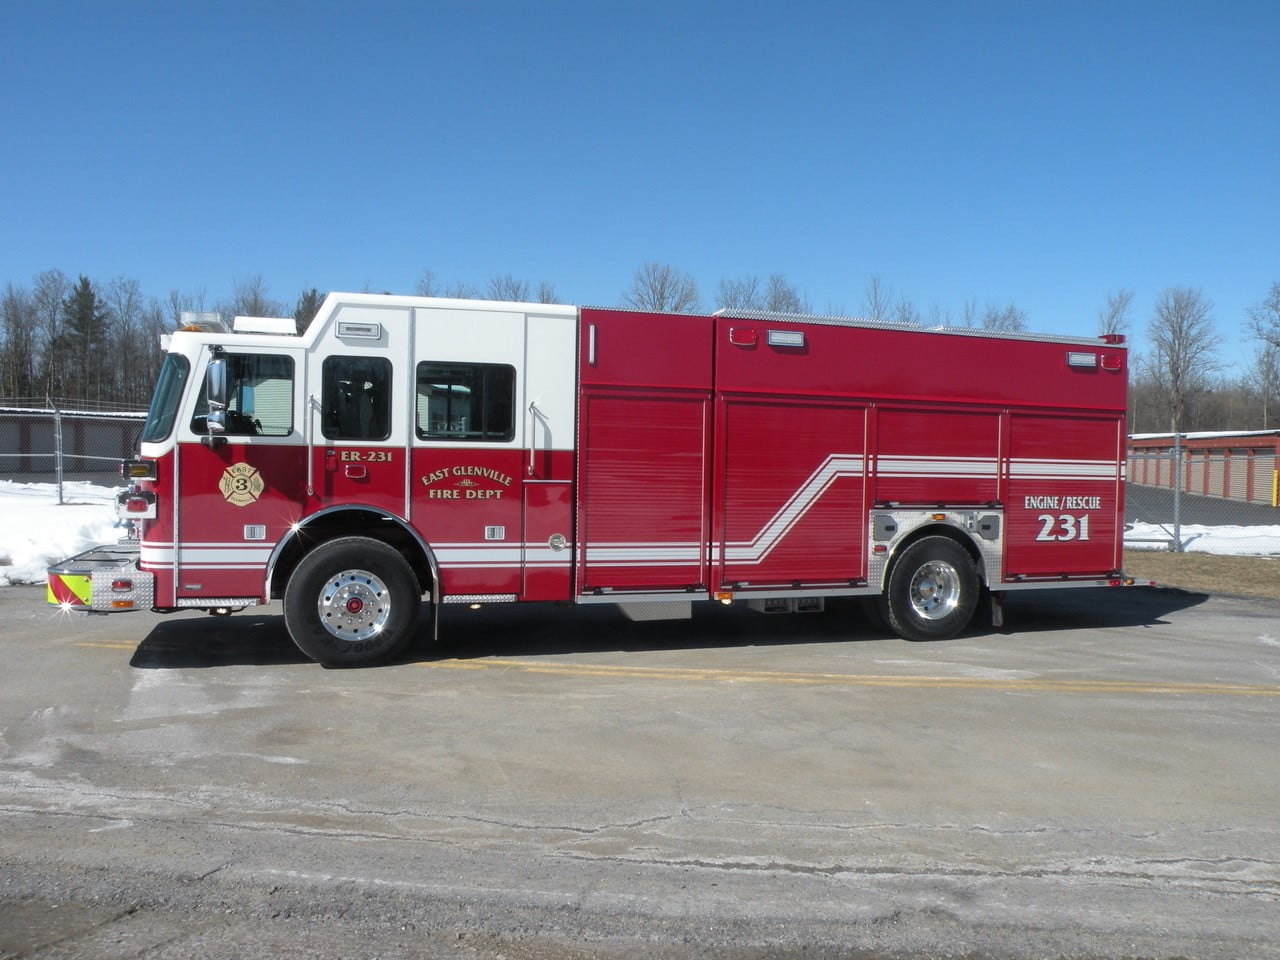 East Glenville Fire Department, NY